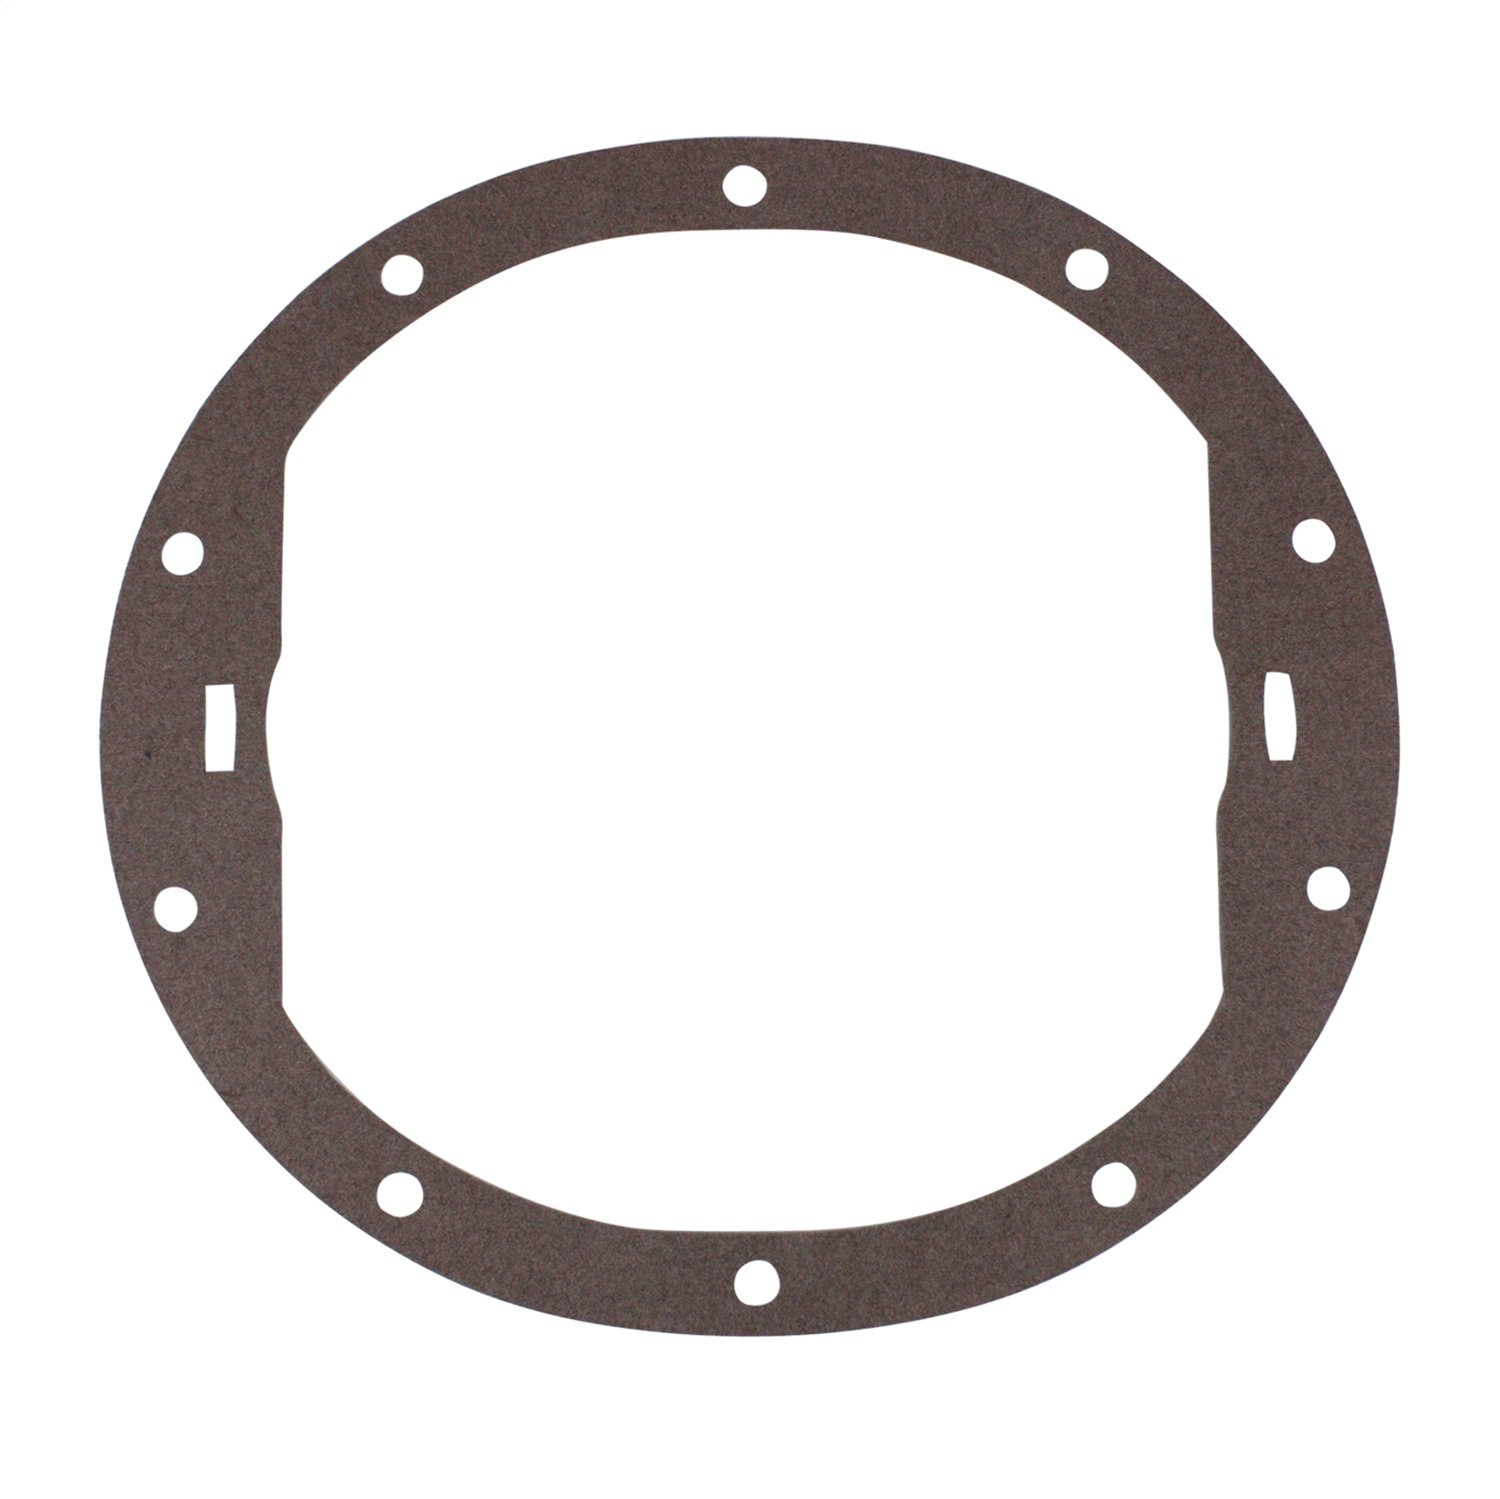 Yukon (YCGGM8.5) Cover Gasket for GM 8.2'/8.5' Rear Differential Yukon Gear